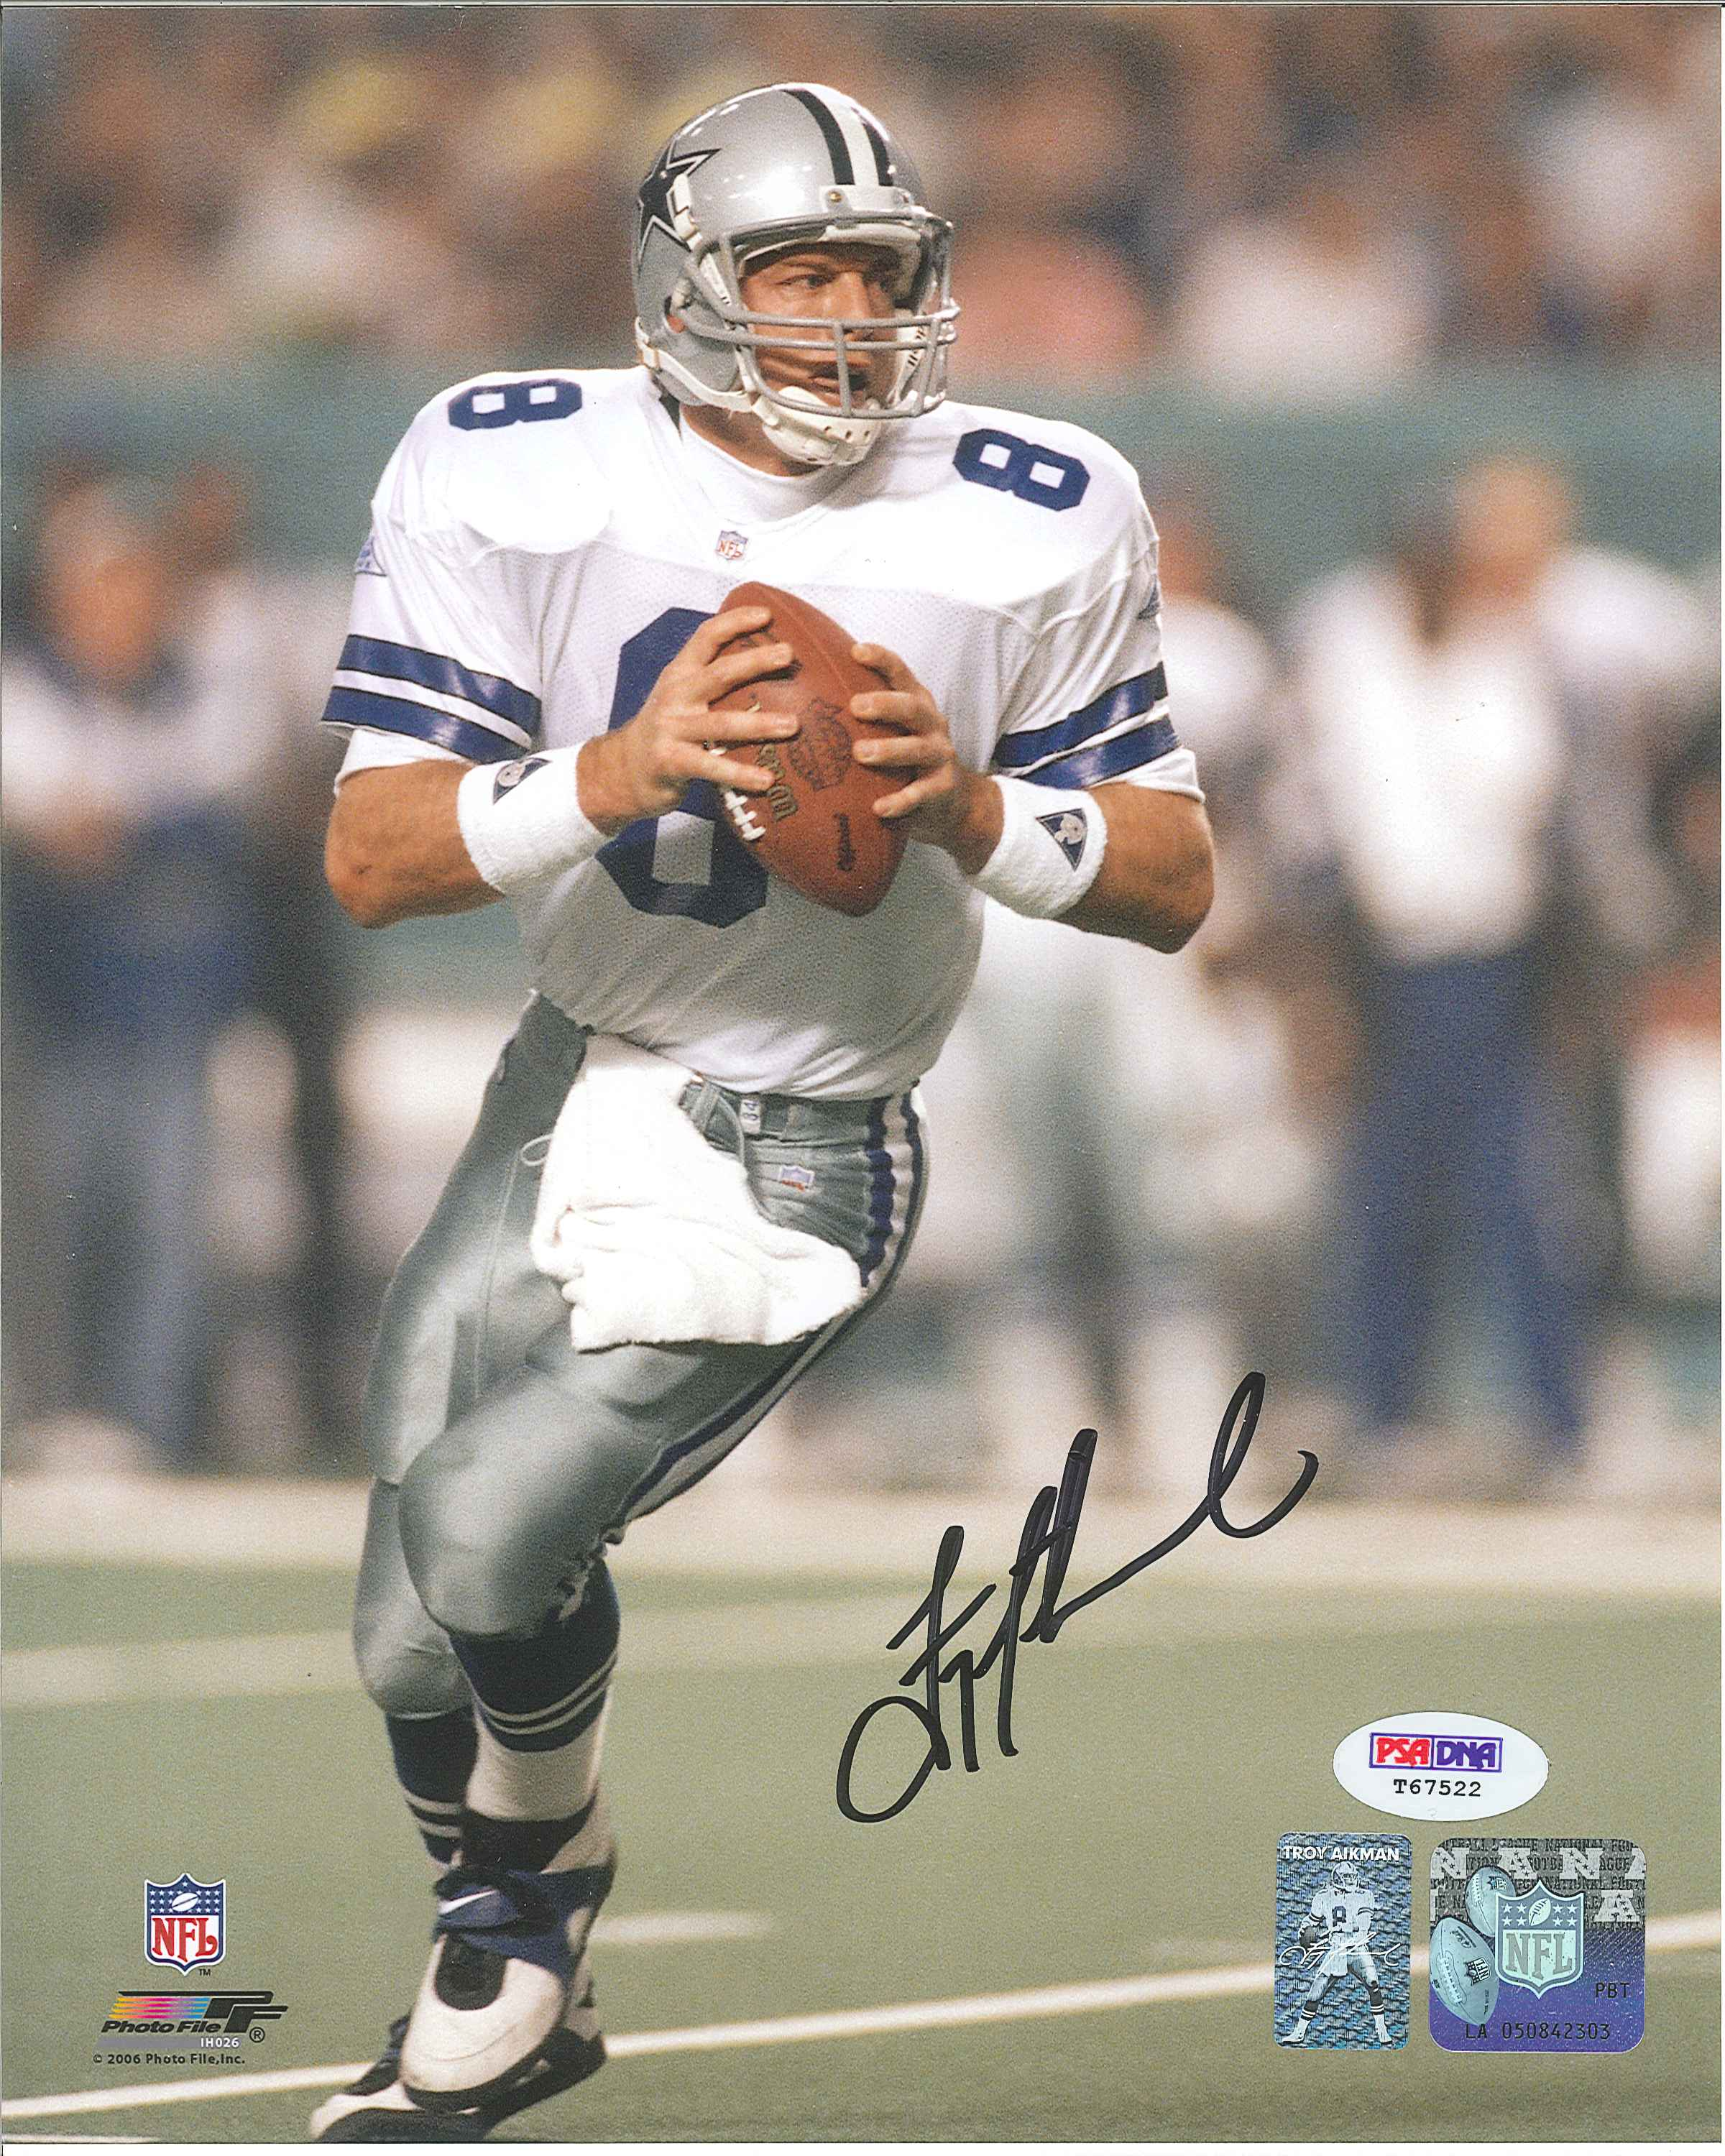 ... Troy Aikman Autographed Dallas Cowboys 8 x 10 Photo.  West Coast Authentic NFL Cowboys Troy Aikman Autographed Photo 6e5afa443